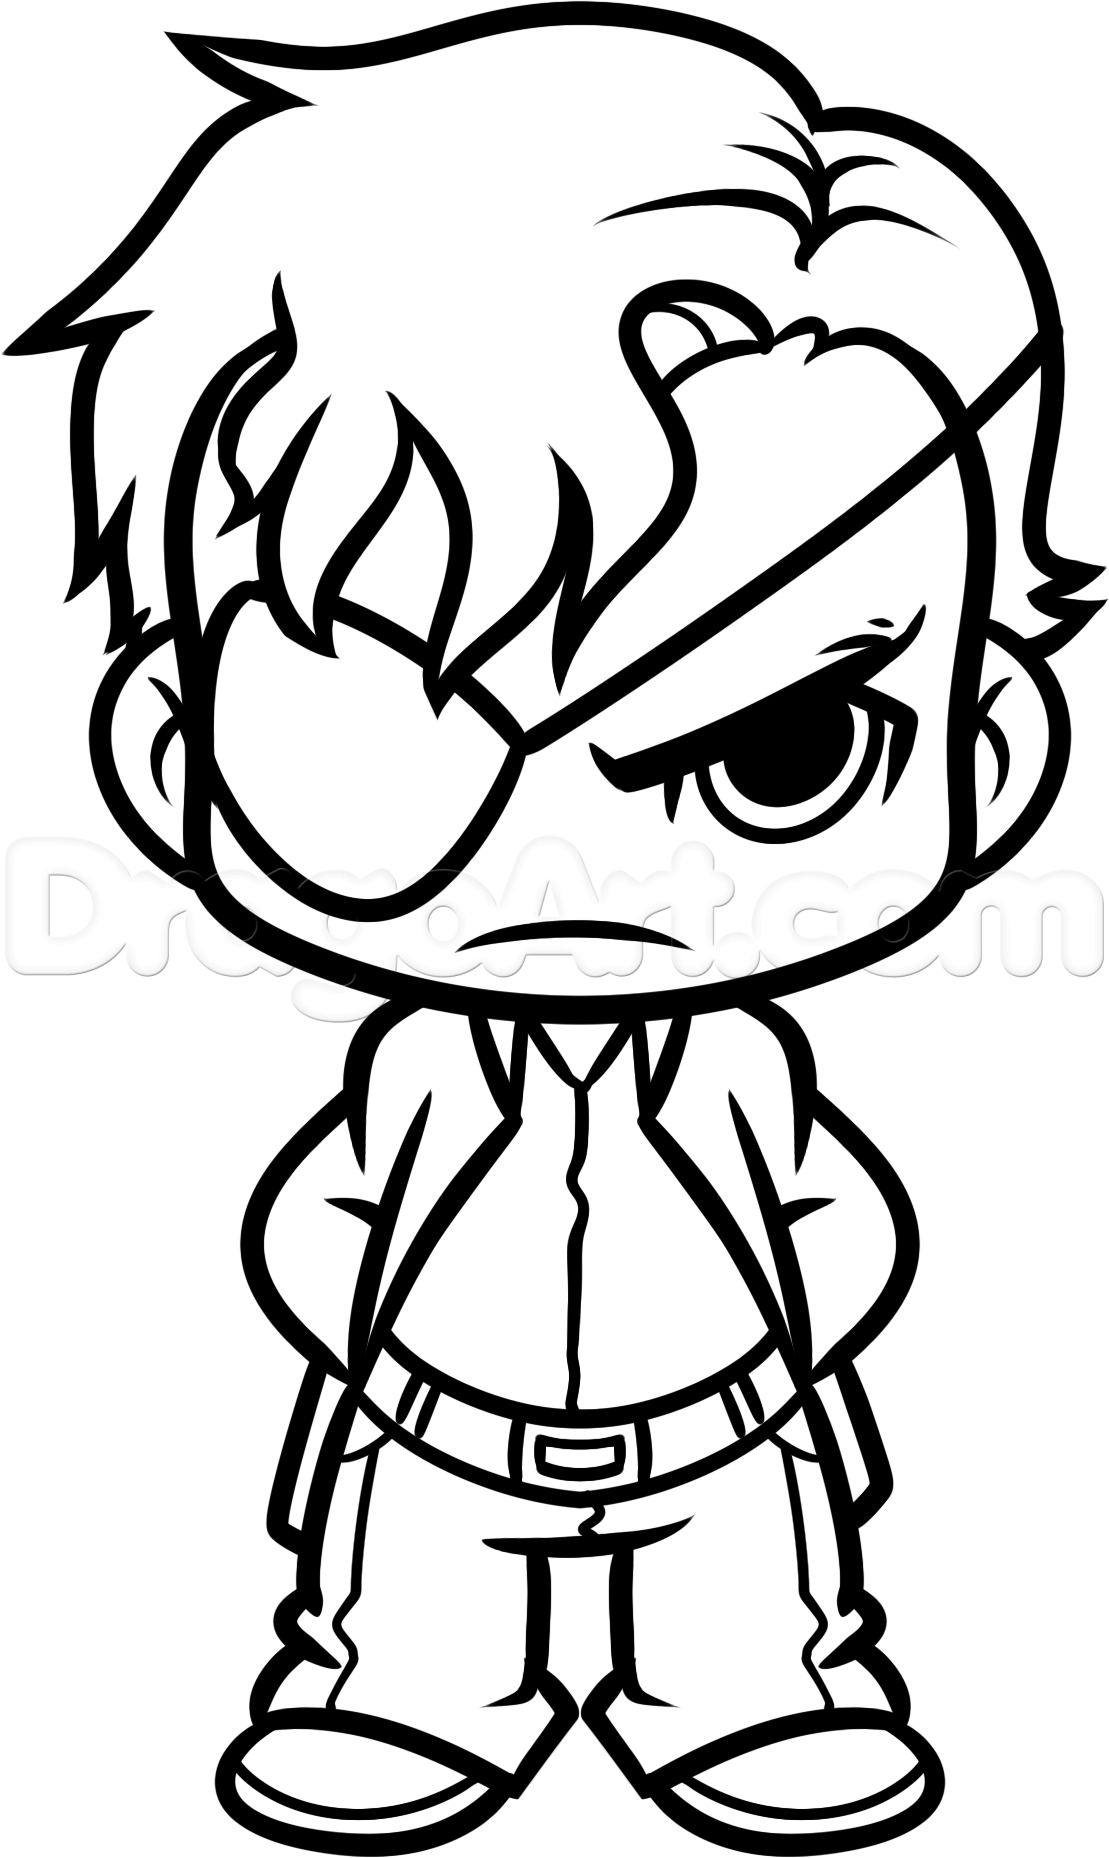 1109x1858 How To Draw Chibi Governor From The Walking Dead, Step